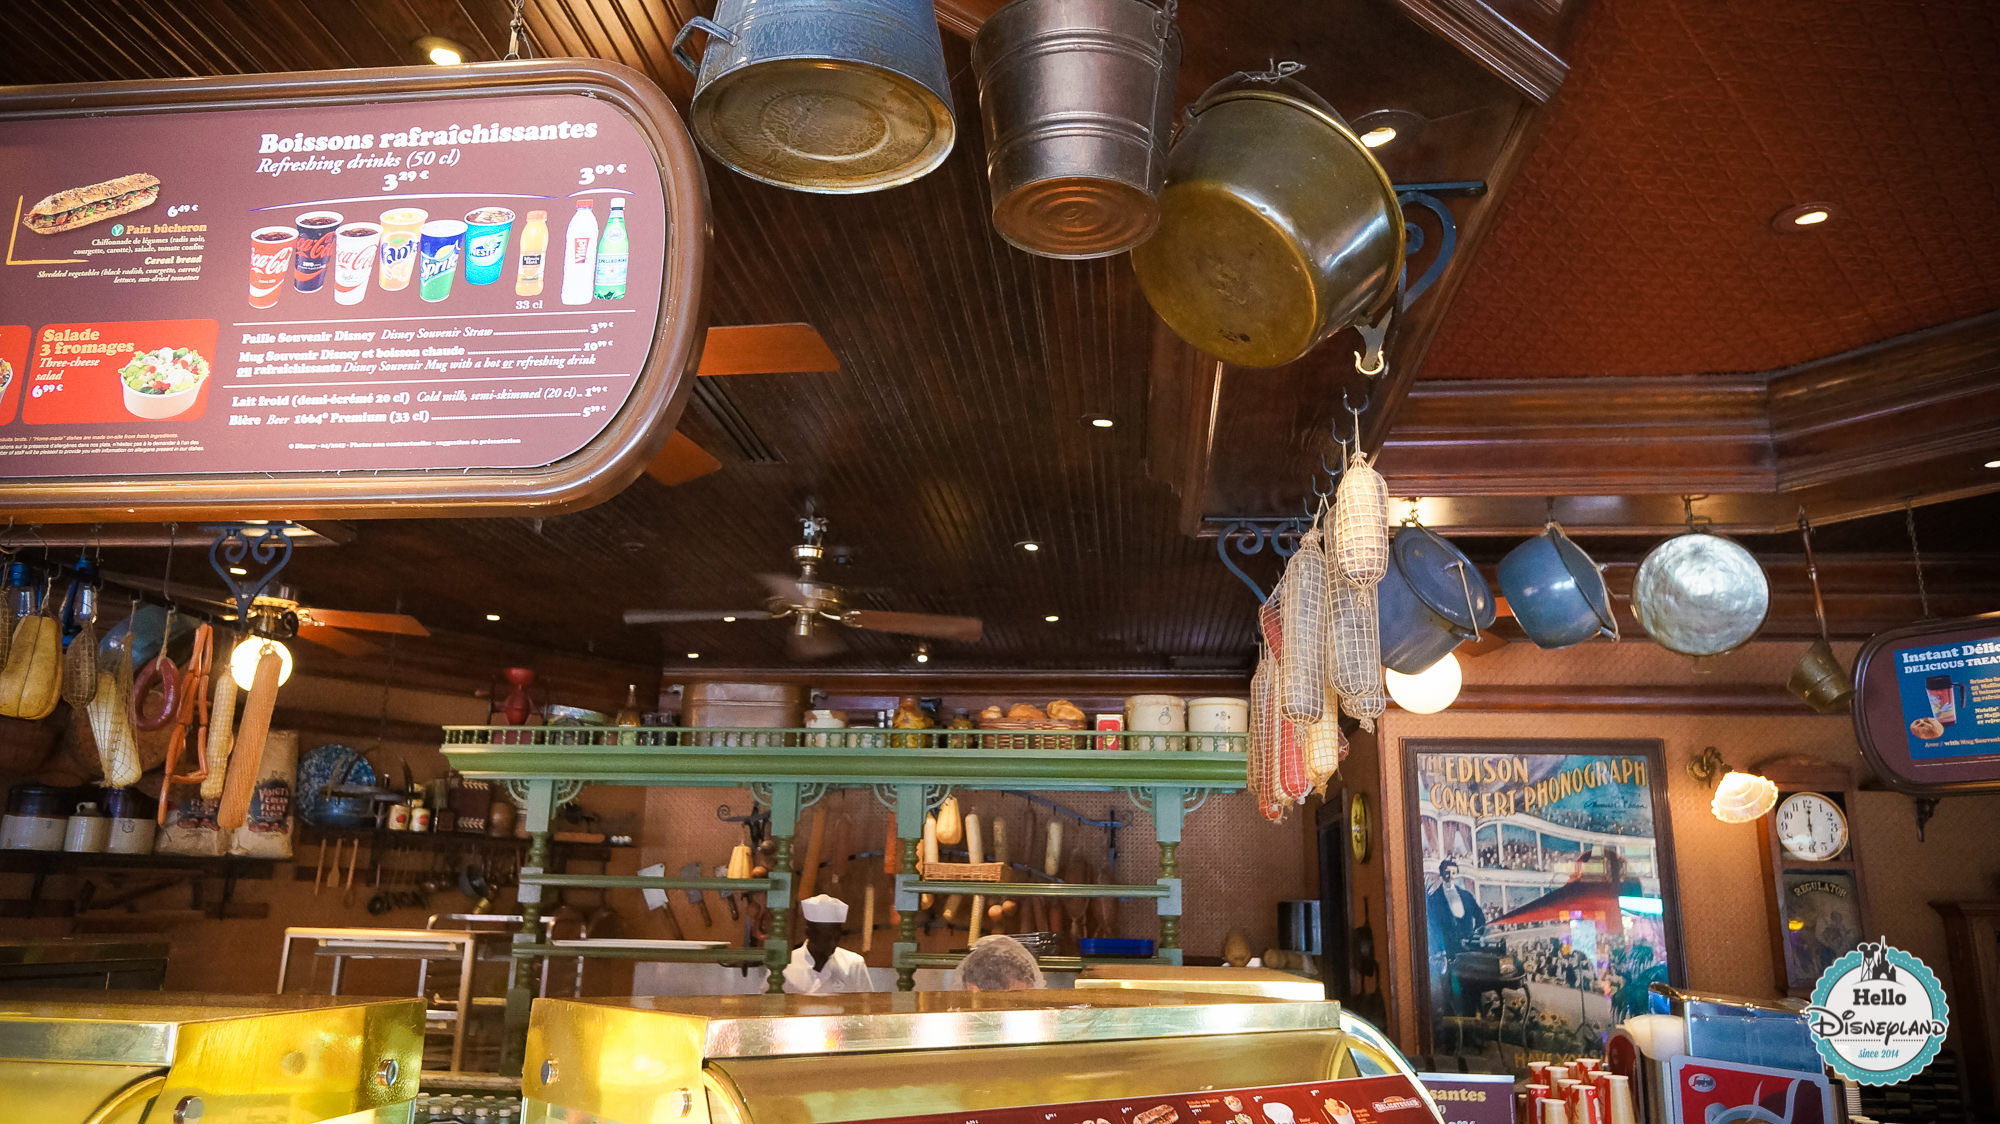 Market House Deli Restaurant - Disneyland Paris